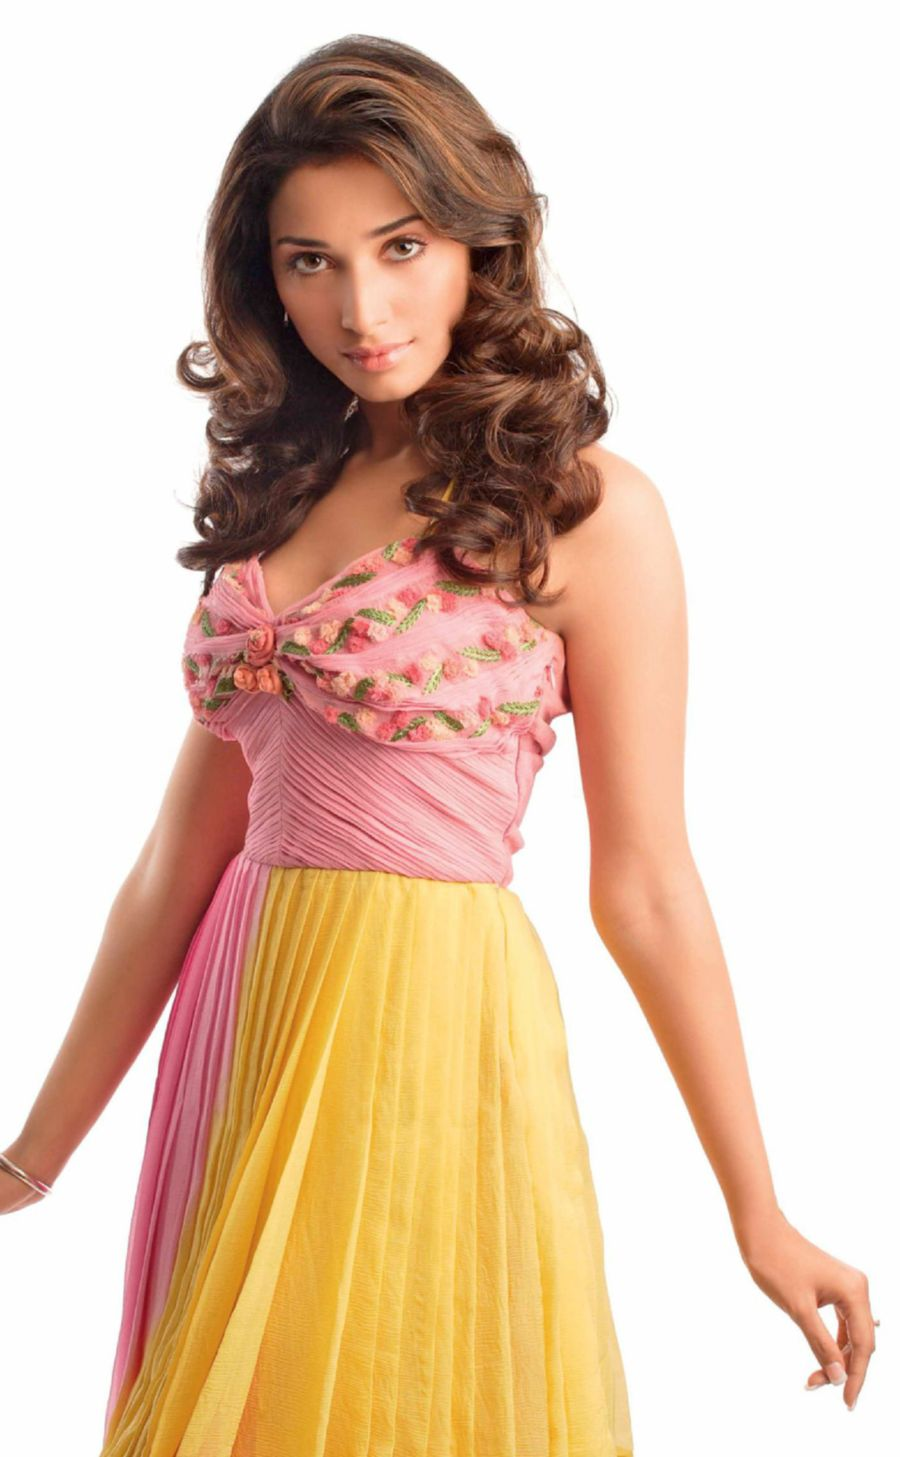 Tamannaah Bhatia Lovely Pose From Savvy Magazine